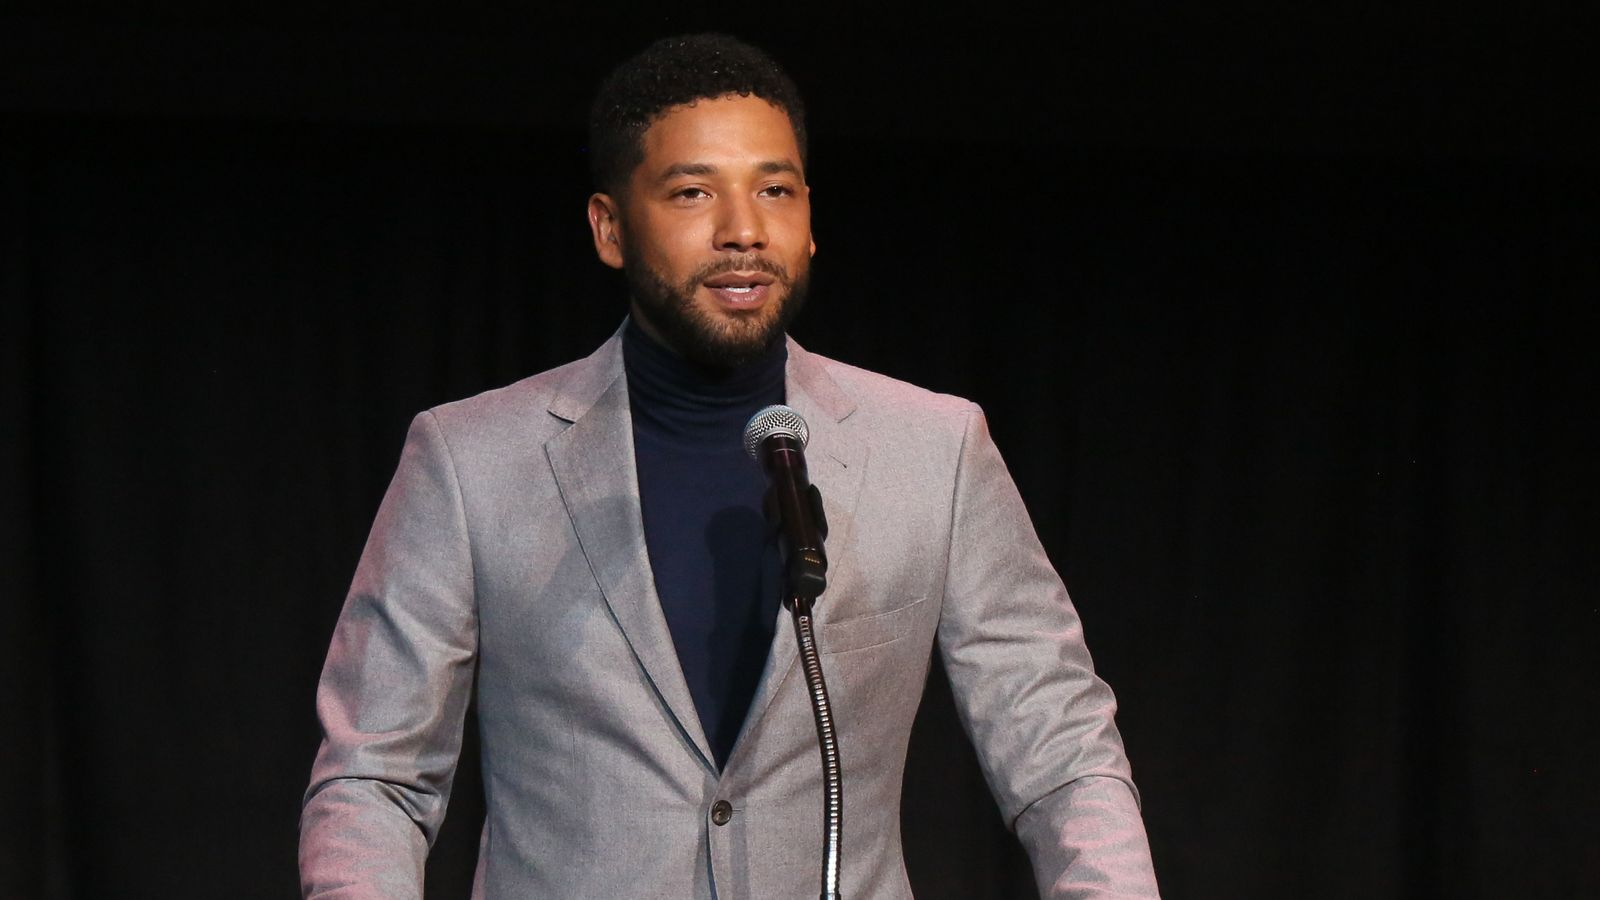 Jussie Smollett assault inquiry has 'shifted' say police